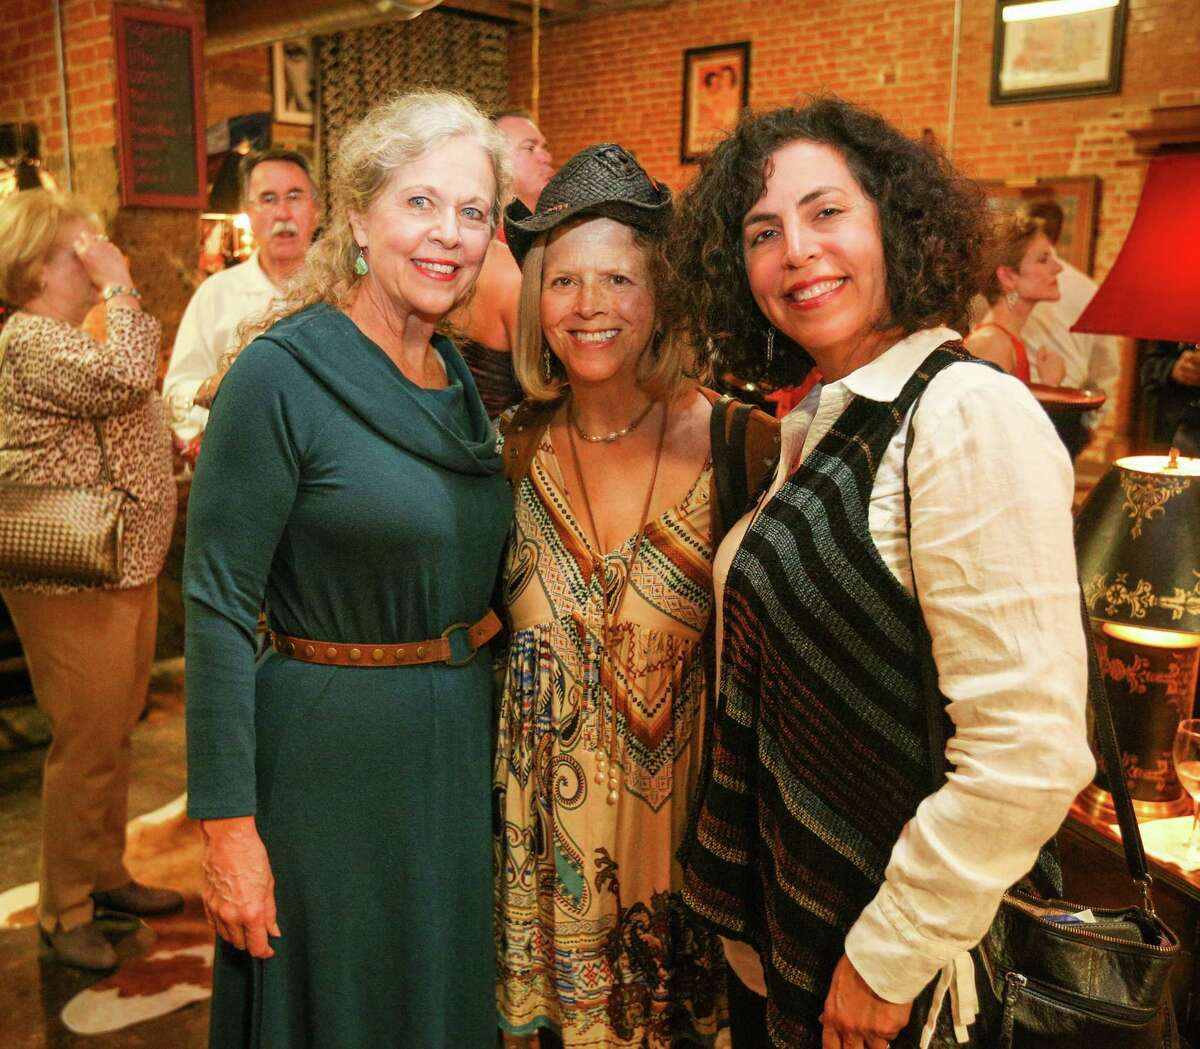 From the left, Nancy Parsons, Bonnie Longnion and Jenny Wright are pictured during the Bach, Beethoven and Barbecue Gala on Saturday, March 10, 2018, outside of Martin's Hall in downtown Conroe.